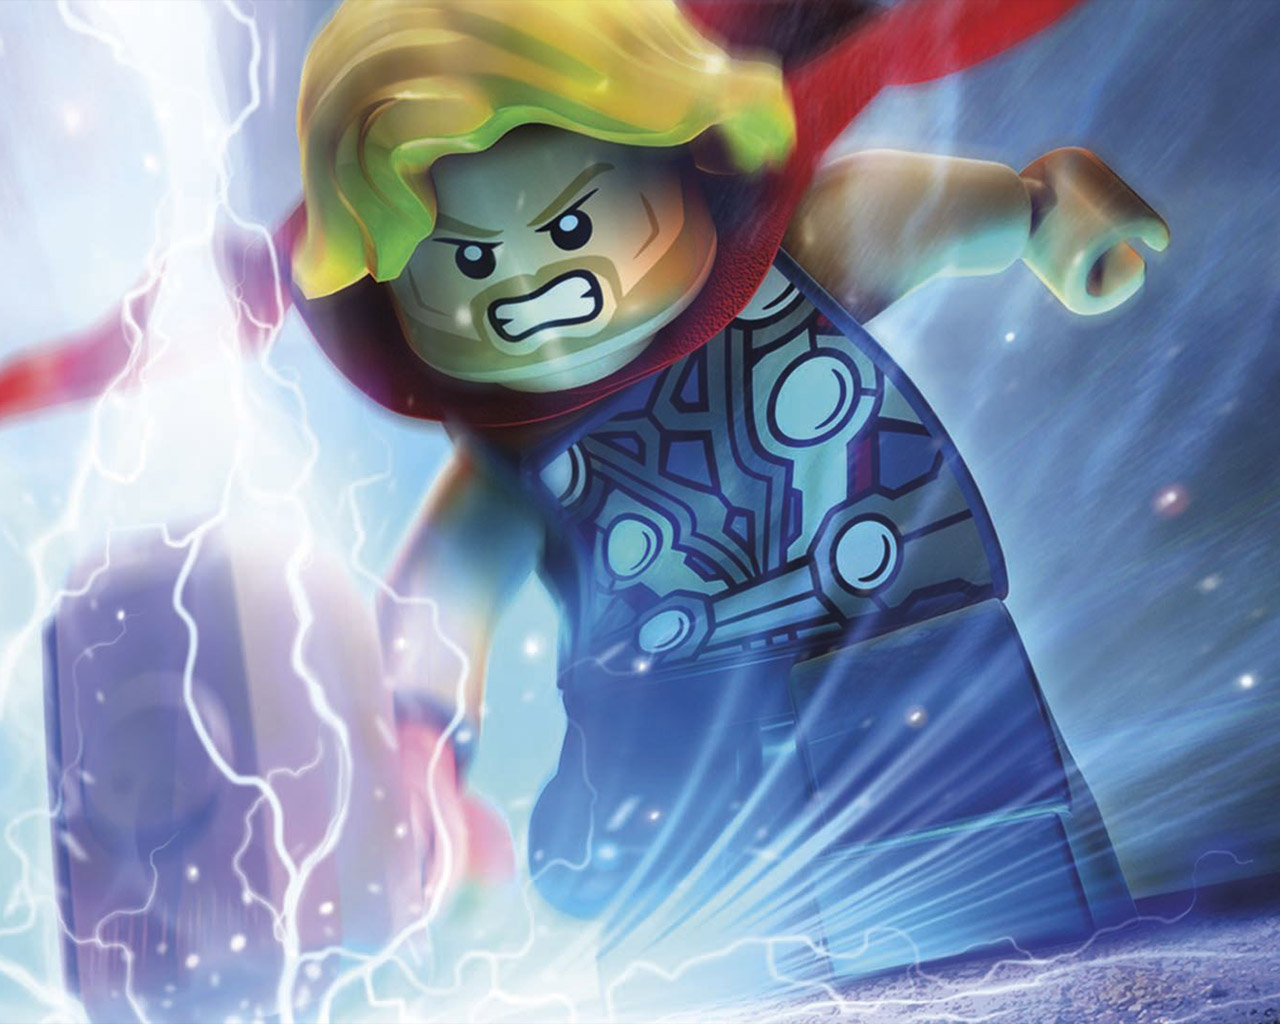 Free Lego Marvel Super Heroes Wallpaper in 1280x1024